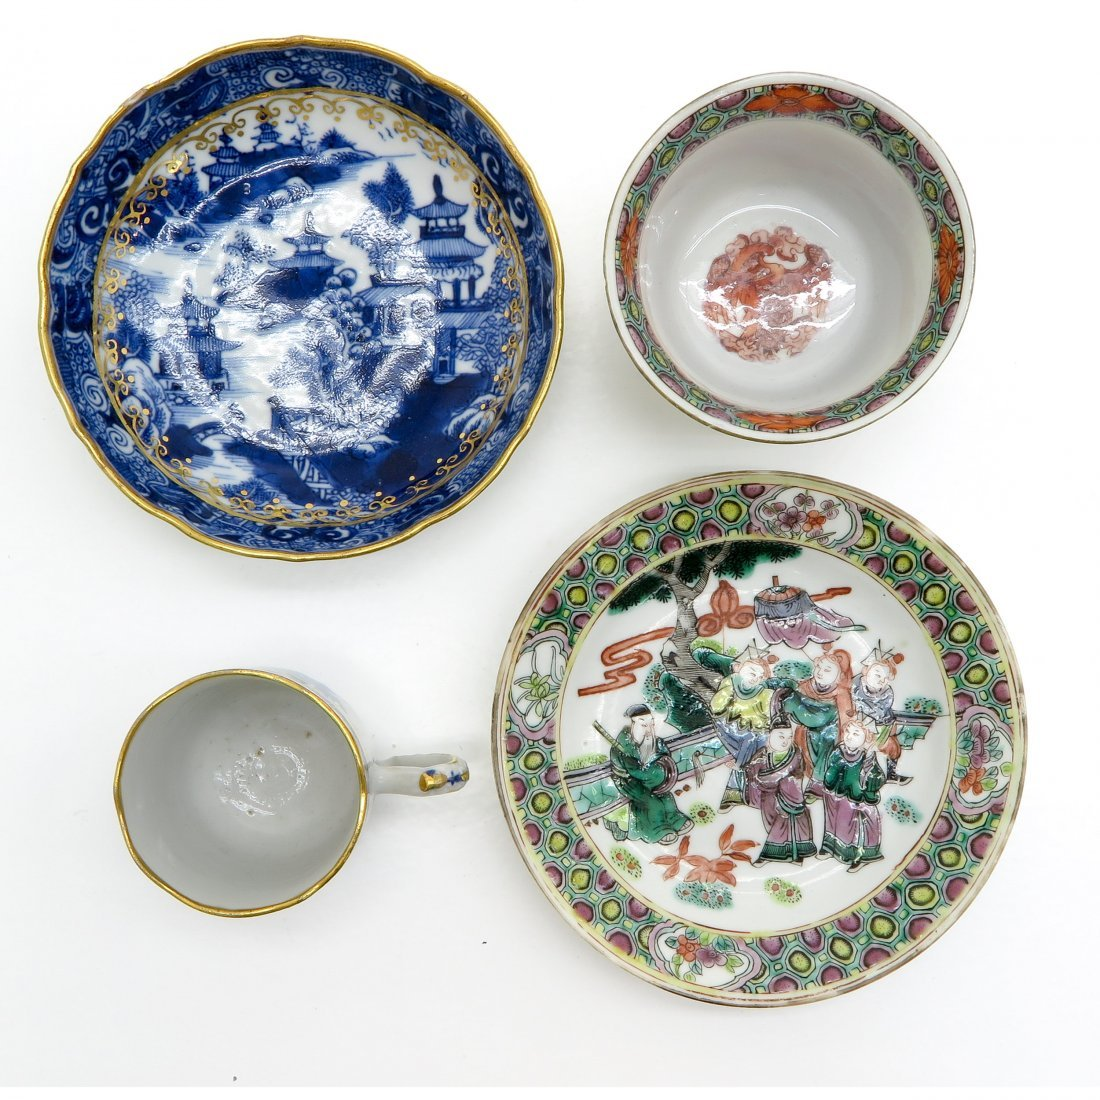 Lot of 18th Century China Porcelain Cups and Saucers - 5